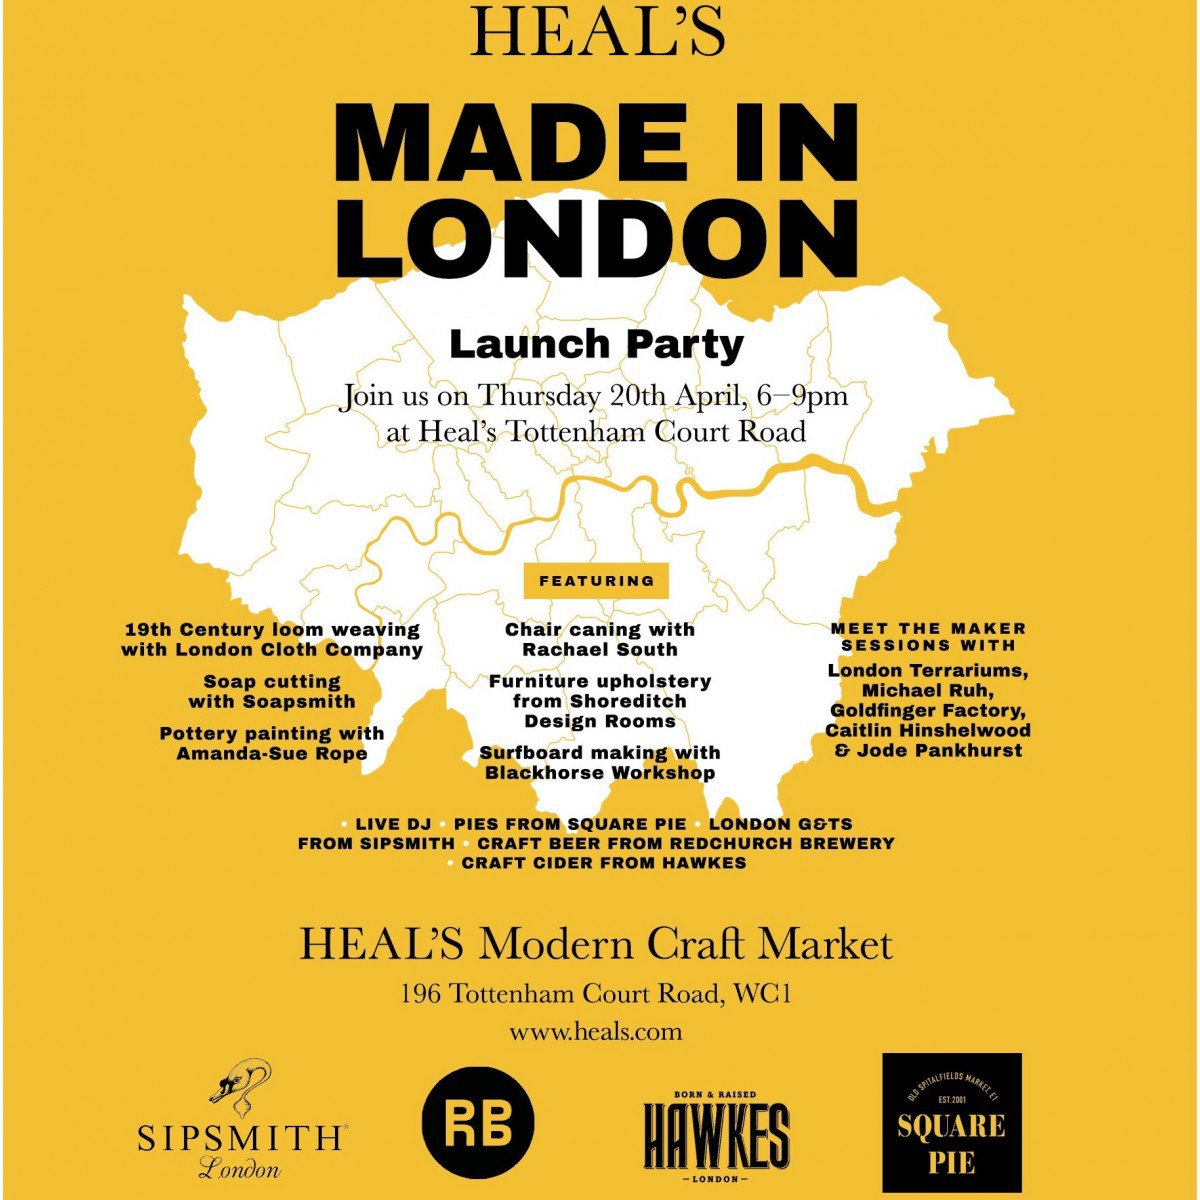 Heals-made-in-london-launch-party